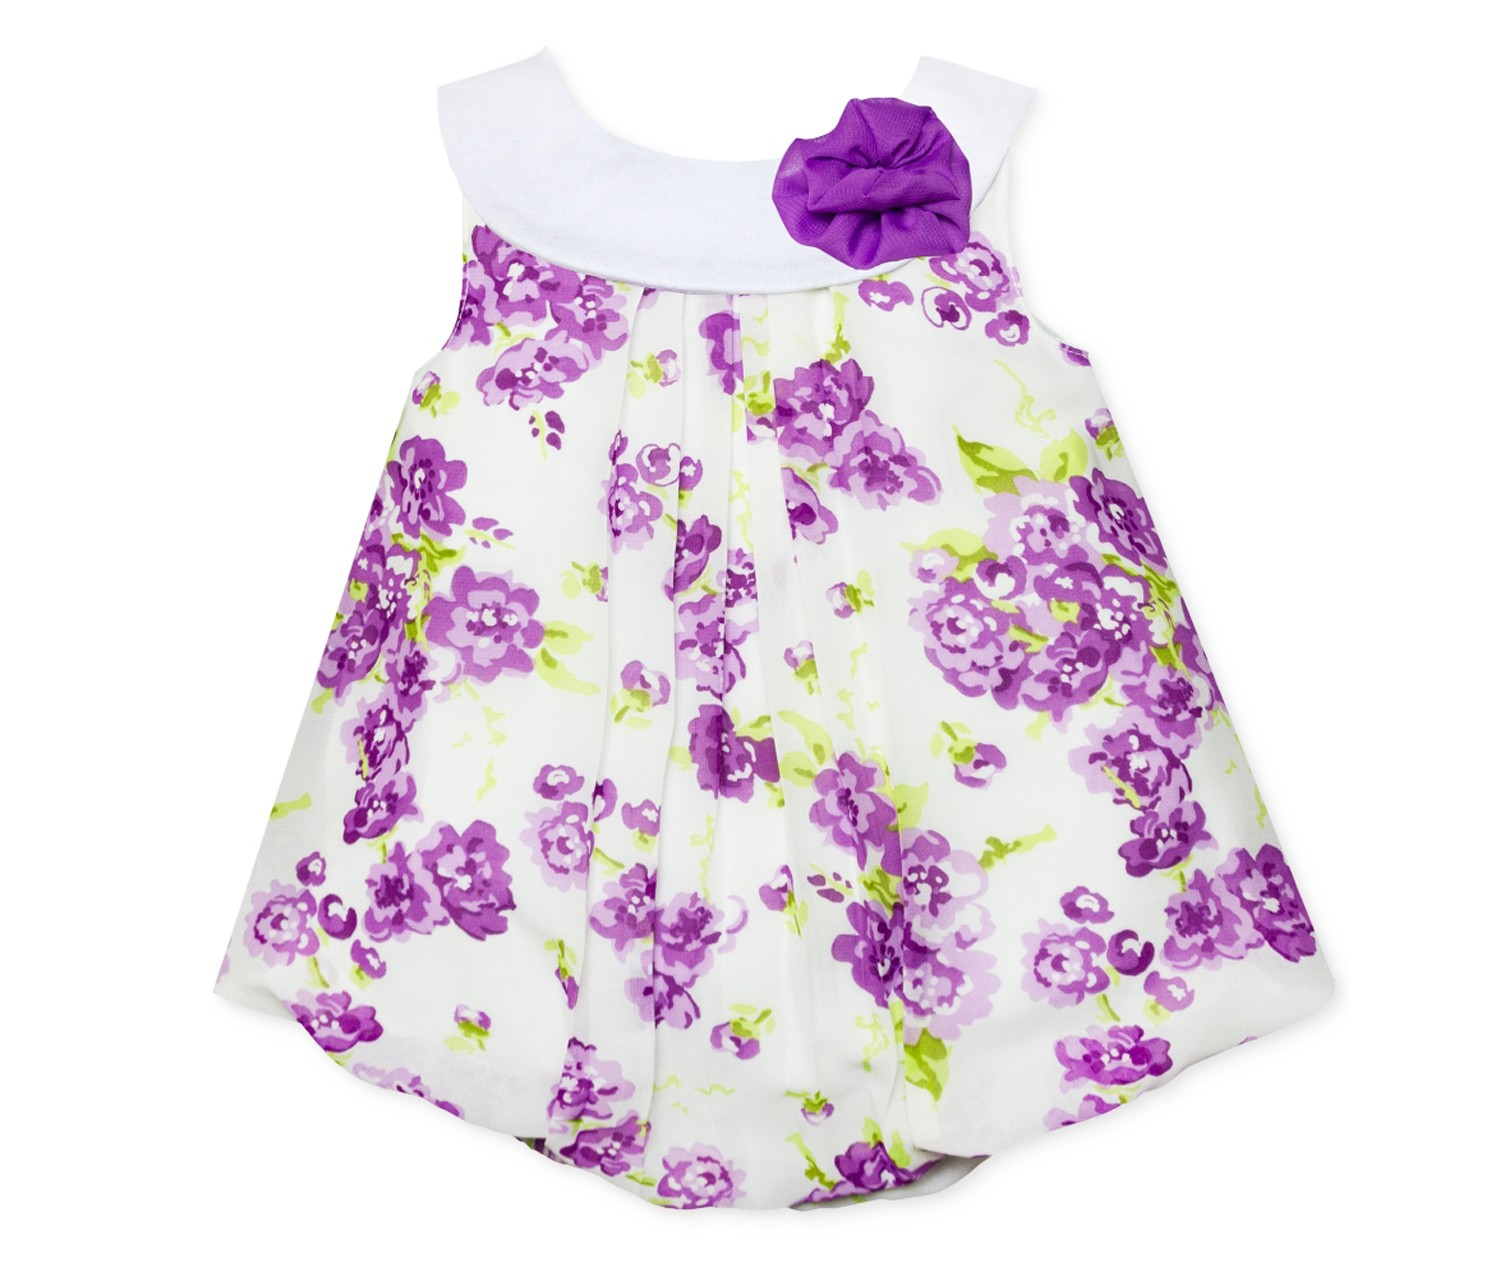 0f9ce6e95 ... Baby Essentials Floral-Print Bubble Romper, Purple. 4/80350.jpg